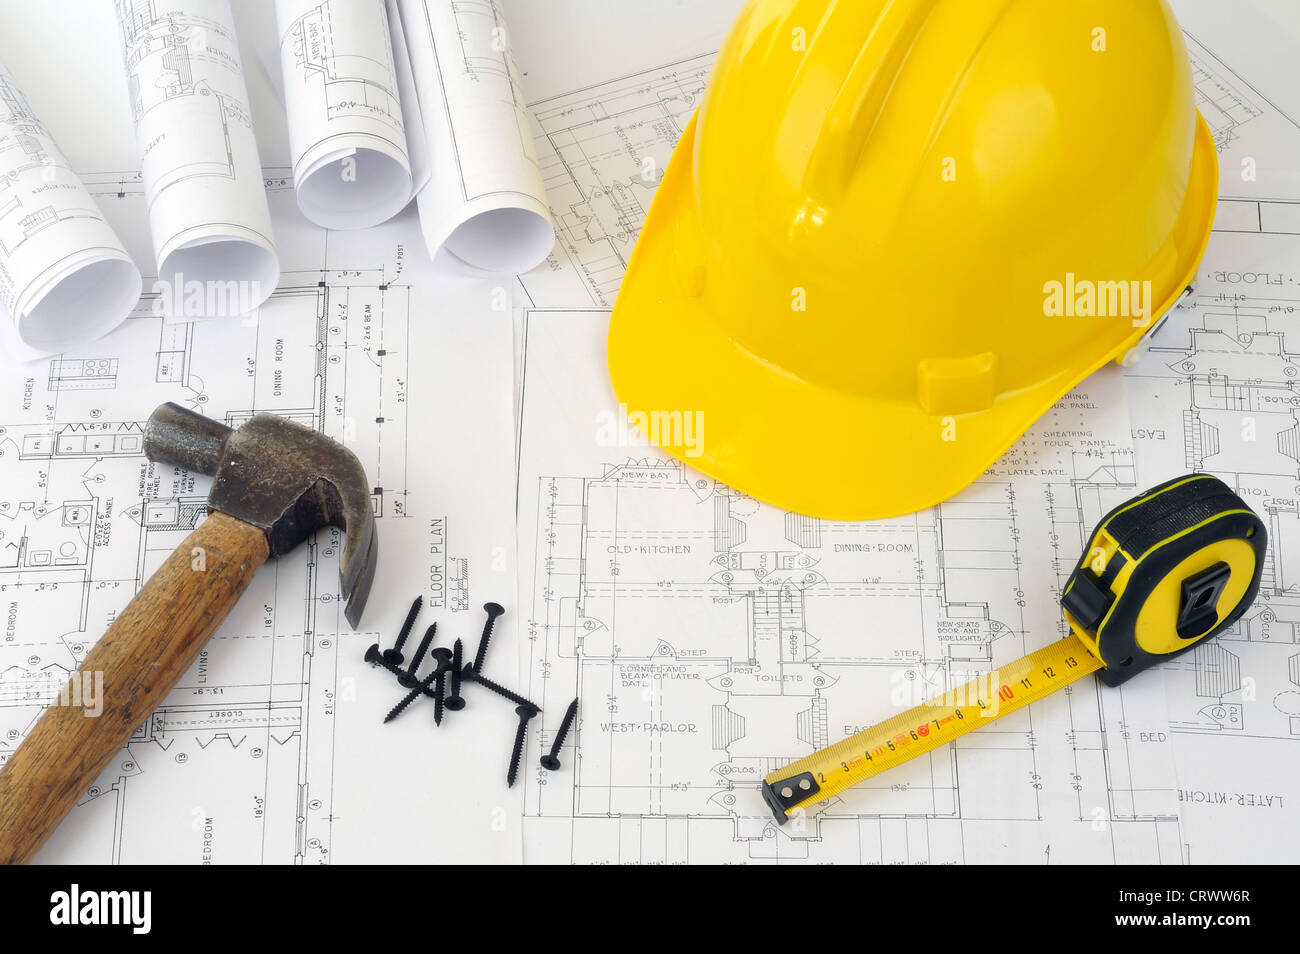 Yellow hard hat and heap of project drawings - Stock Image